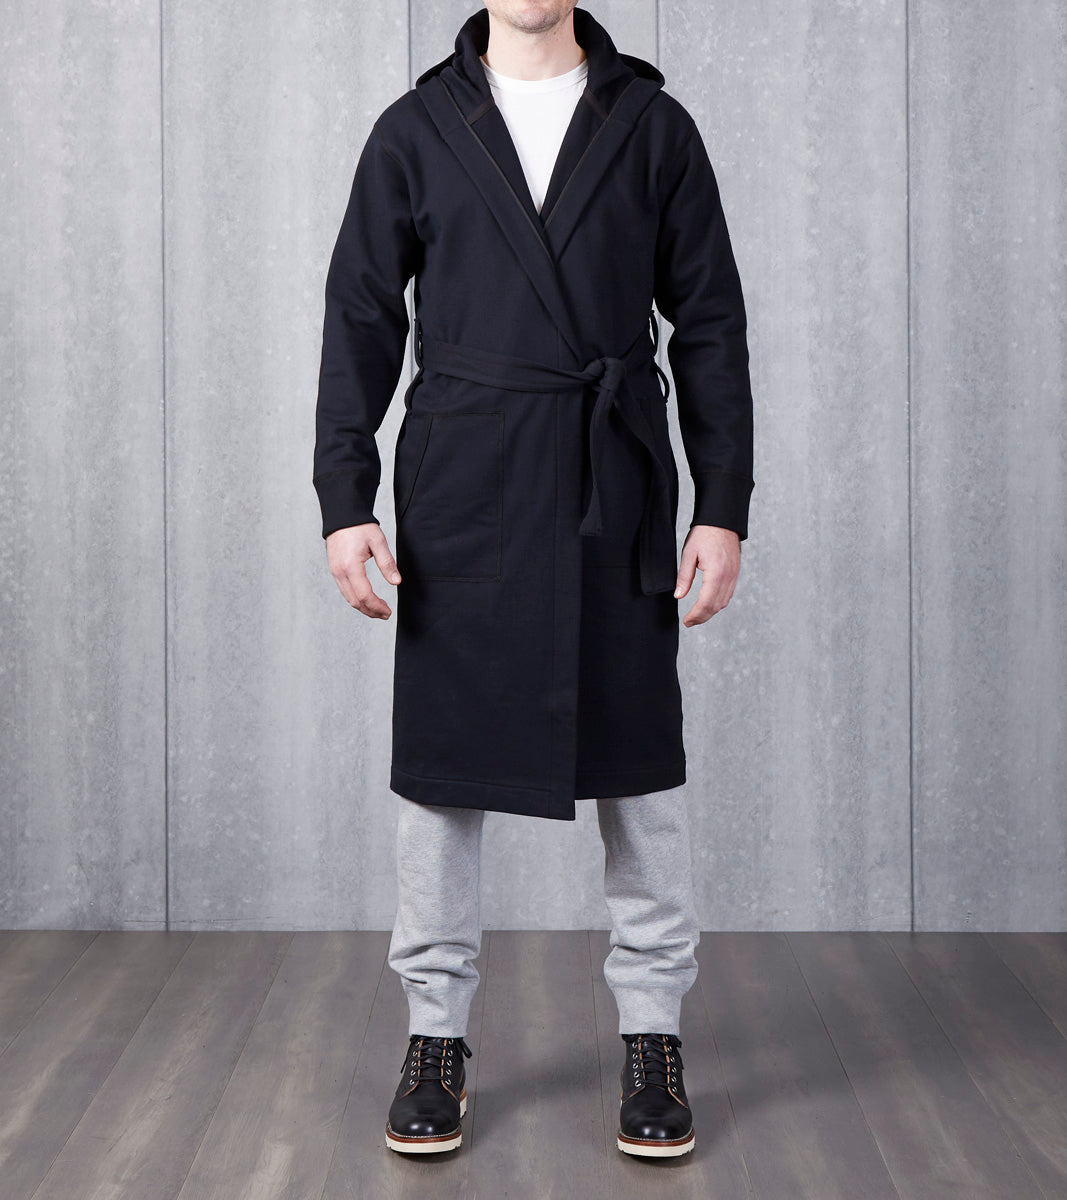 ... Reigning Champ Hooded Robe - Black Division Road ... 4e951c583